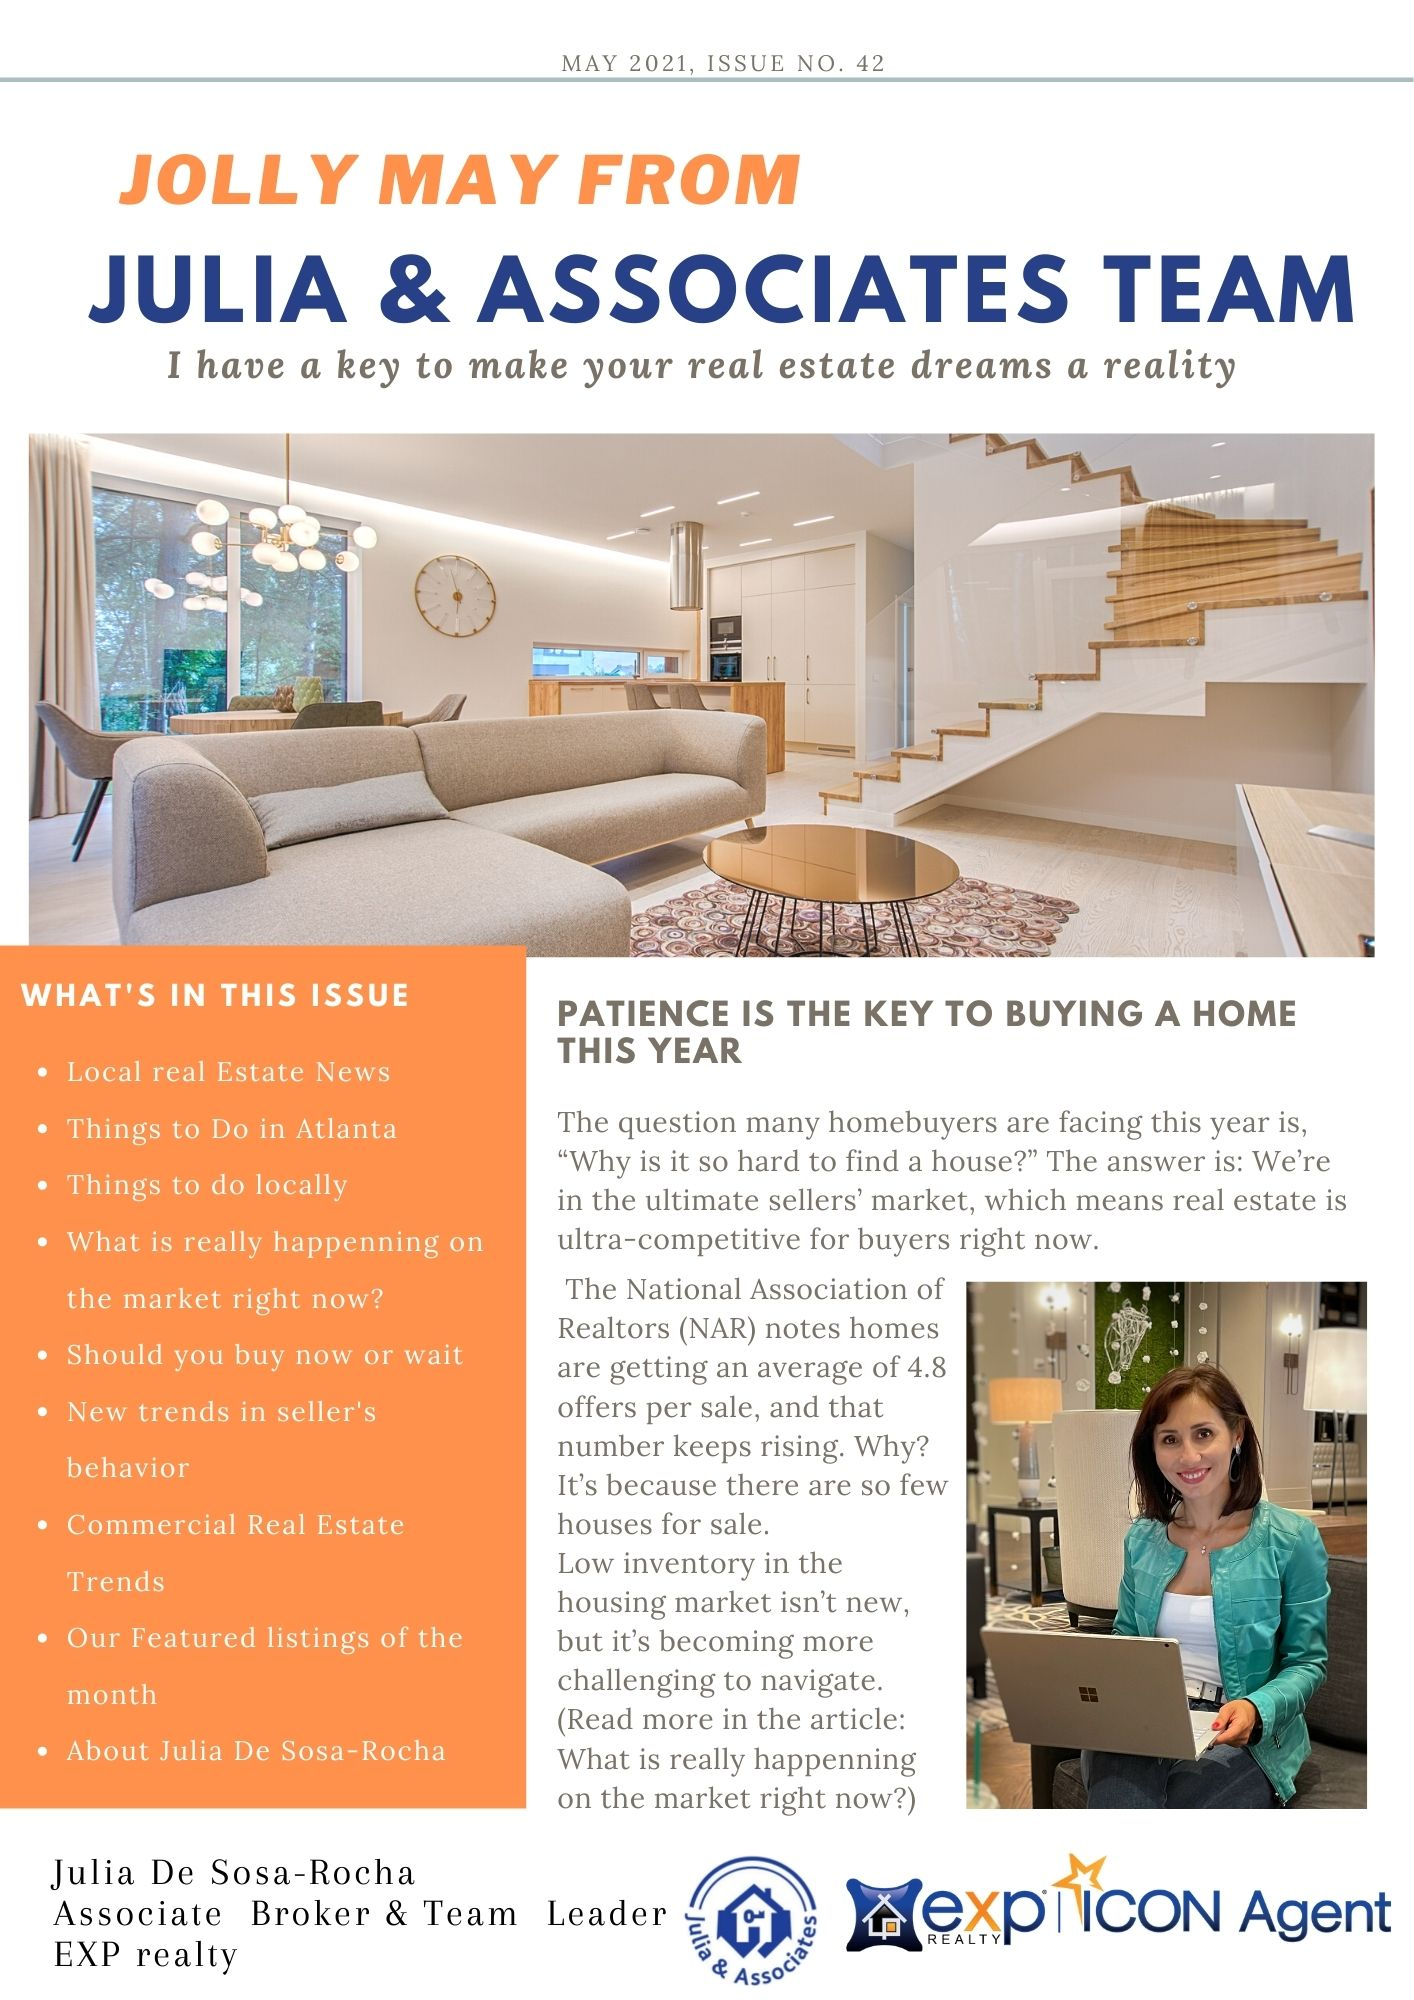 May 2021 Market Report from Julia and Associates Team